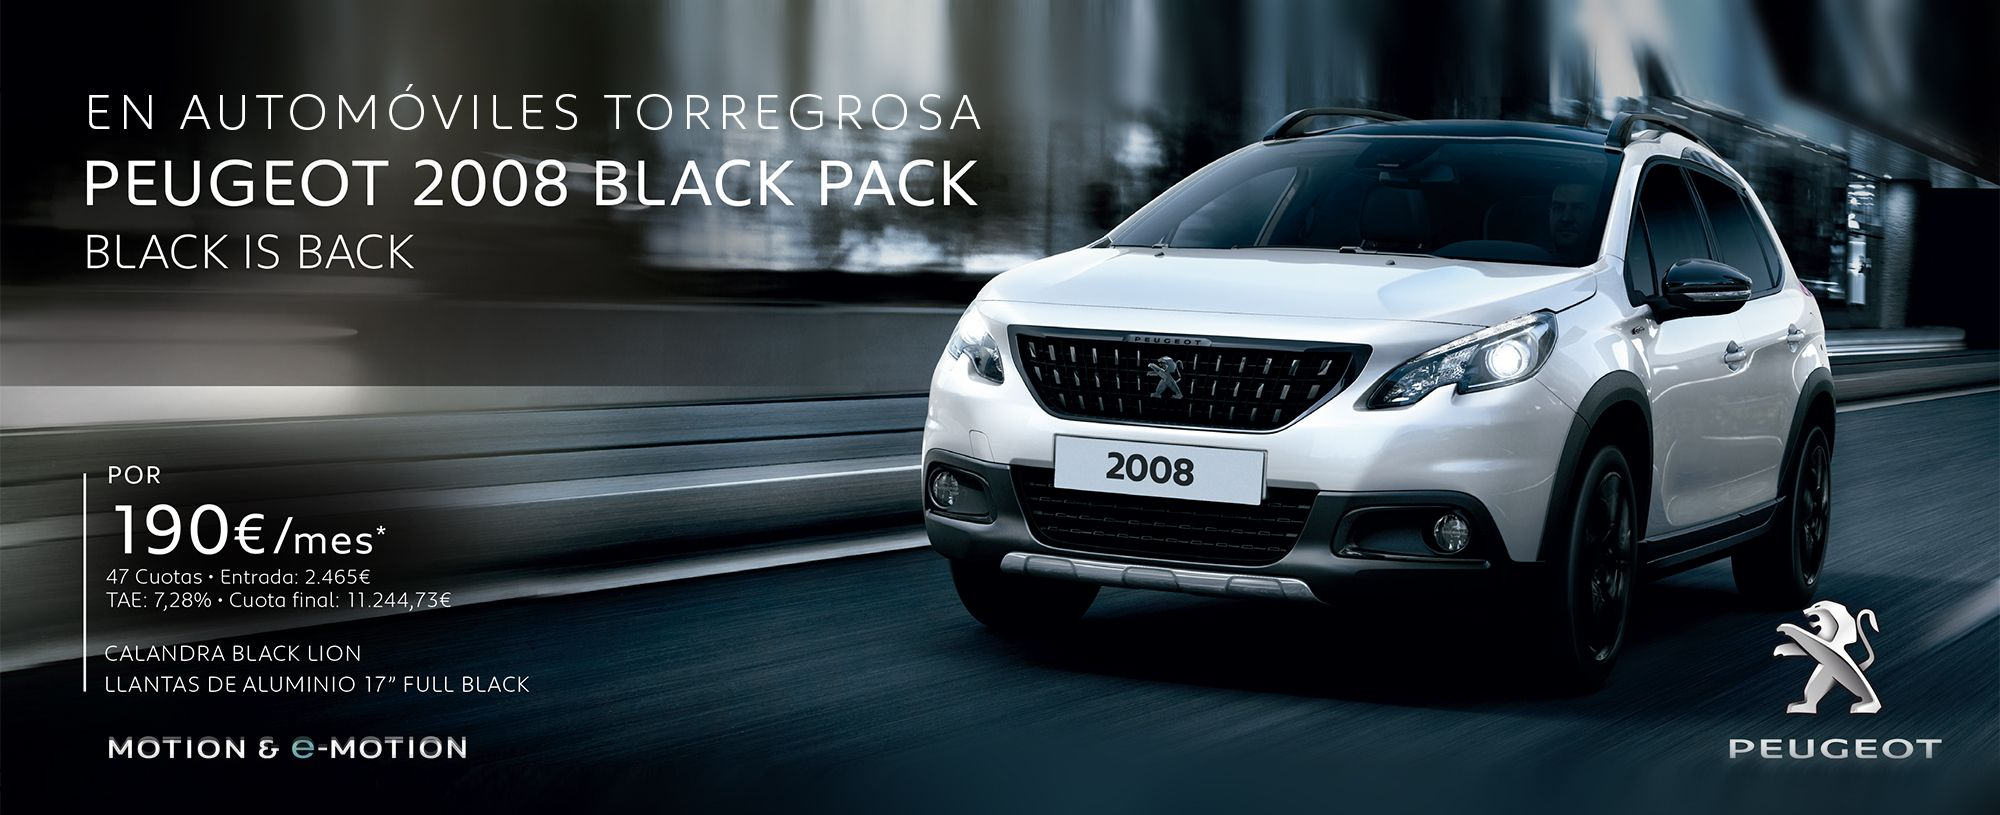 PEUGEOT 2008 BLACK PACK BLACK IS BACK  por 190€/mes*